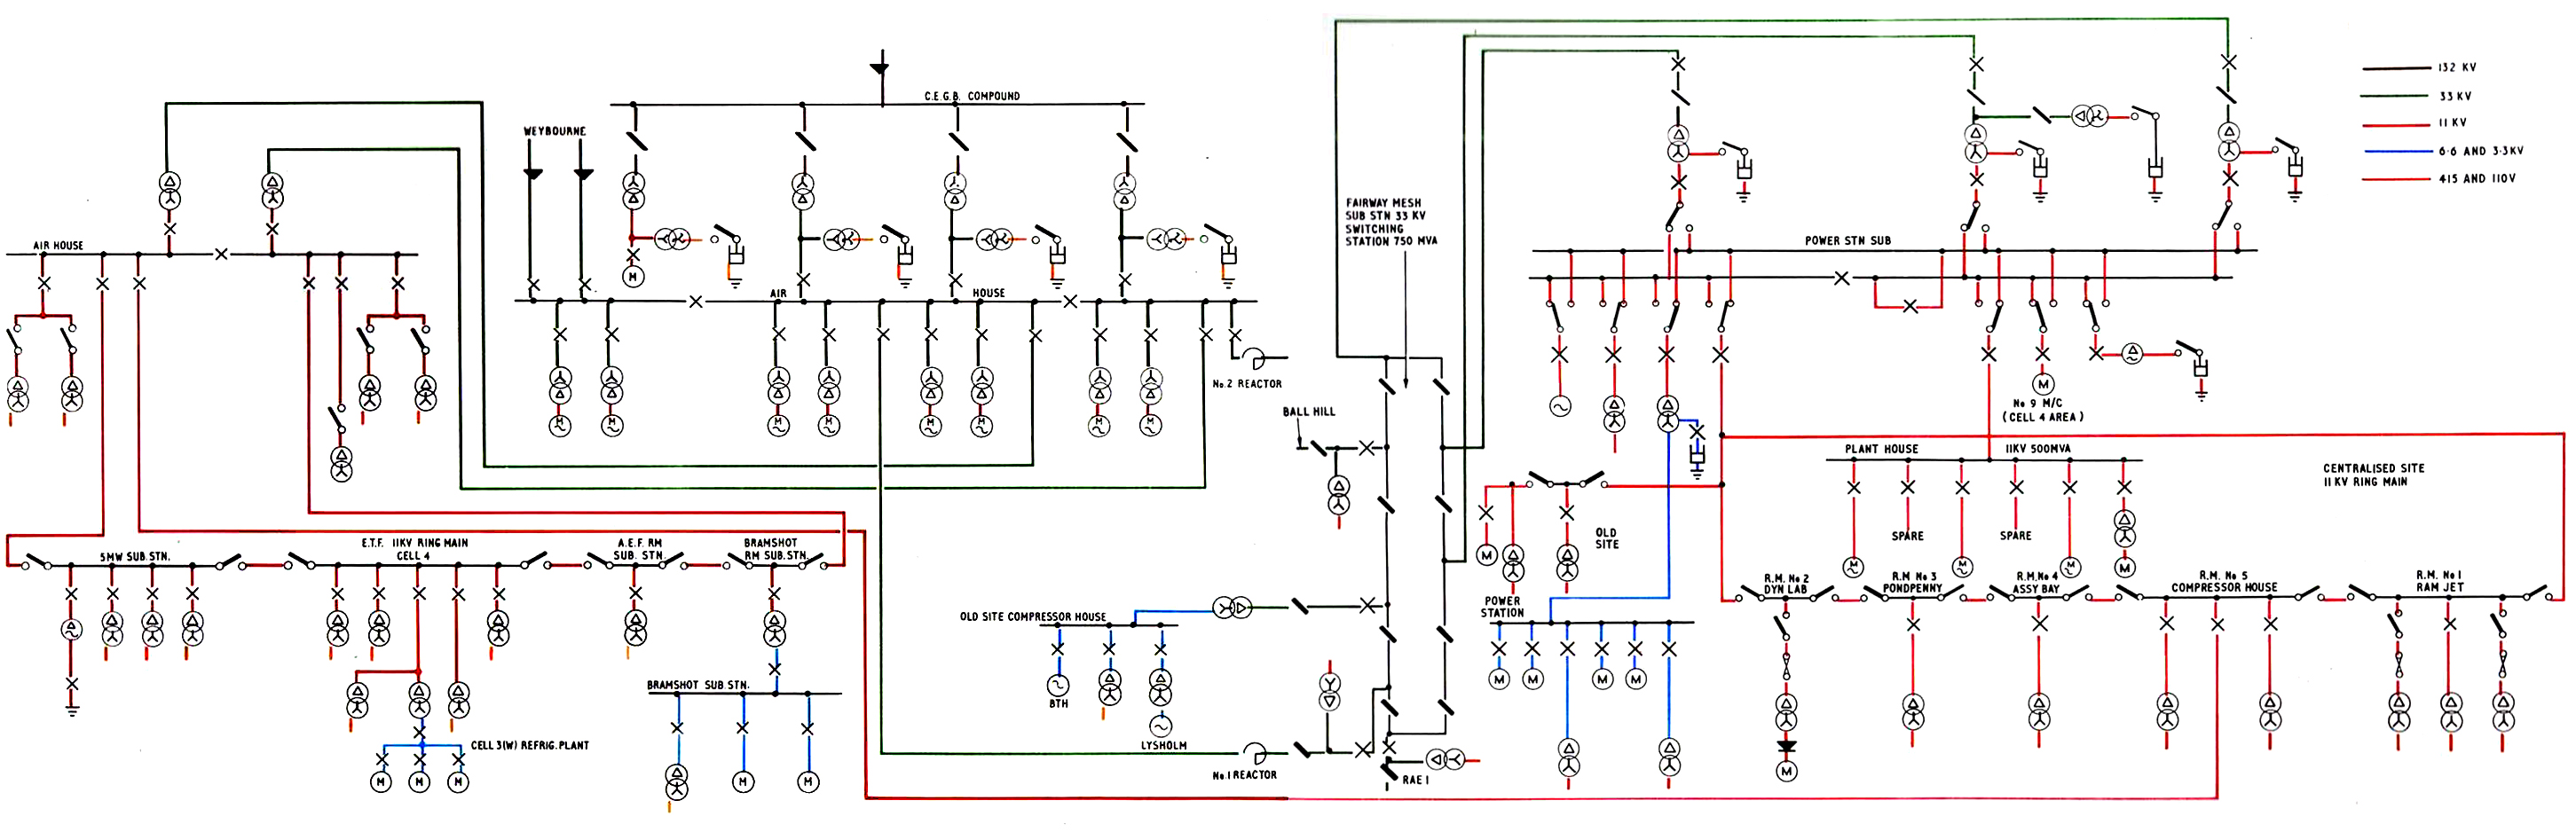 Pyestock Power Plant Circuit Layout 52 Diagram Of Electrical Supplies At Ngte